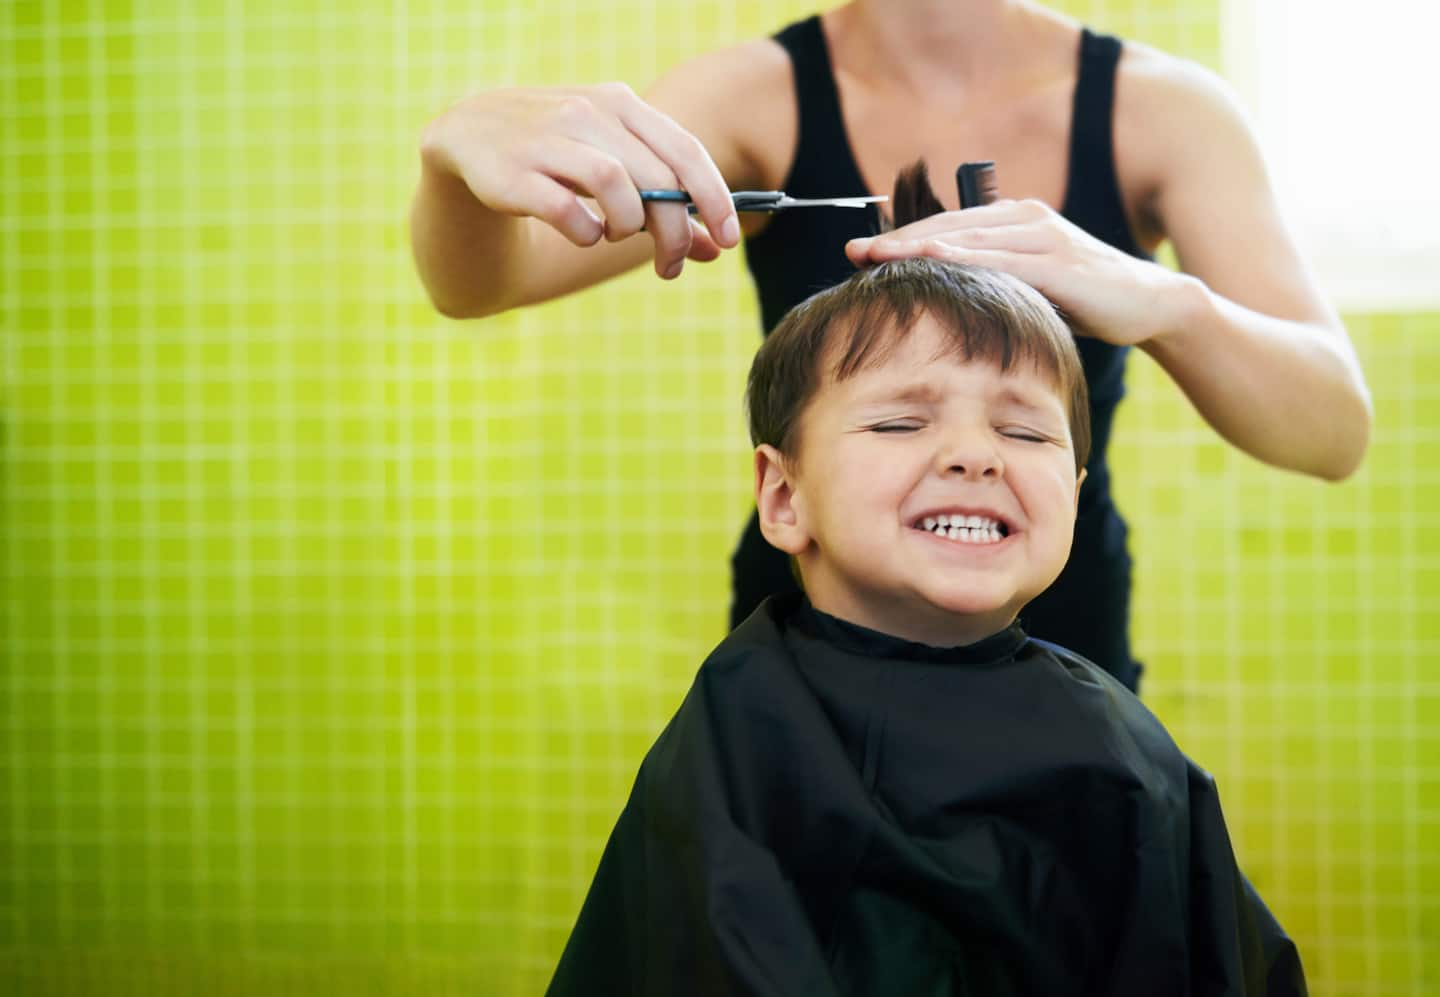 How To Make Your Childs First Haircut Fun Angies List